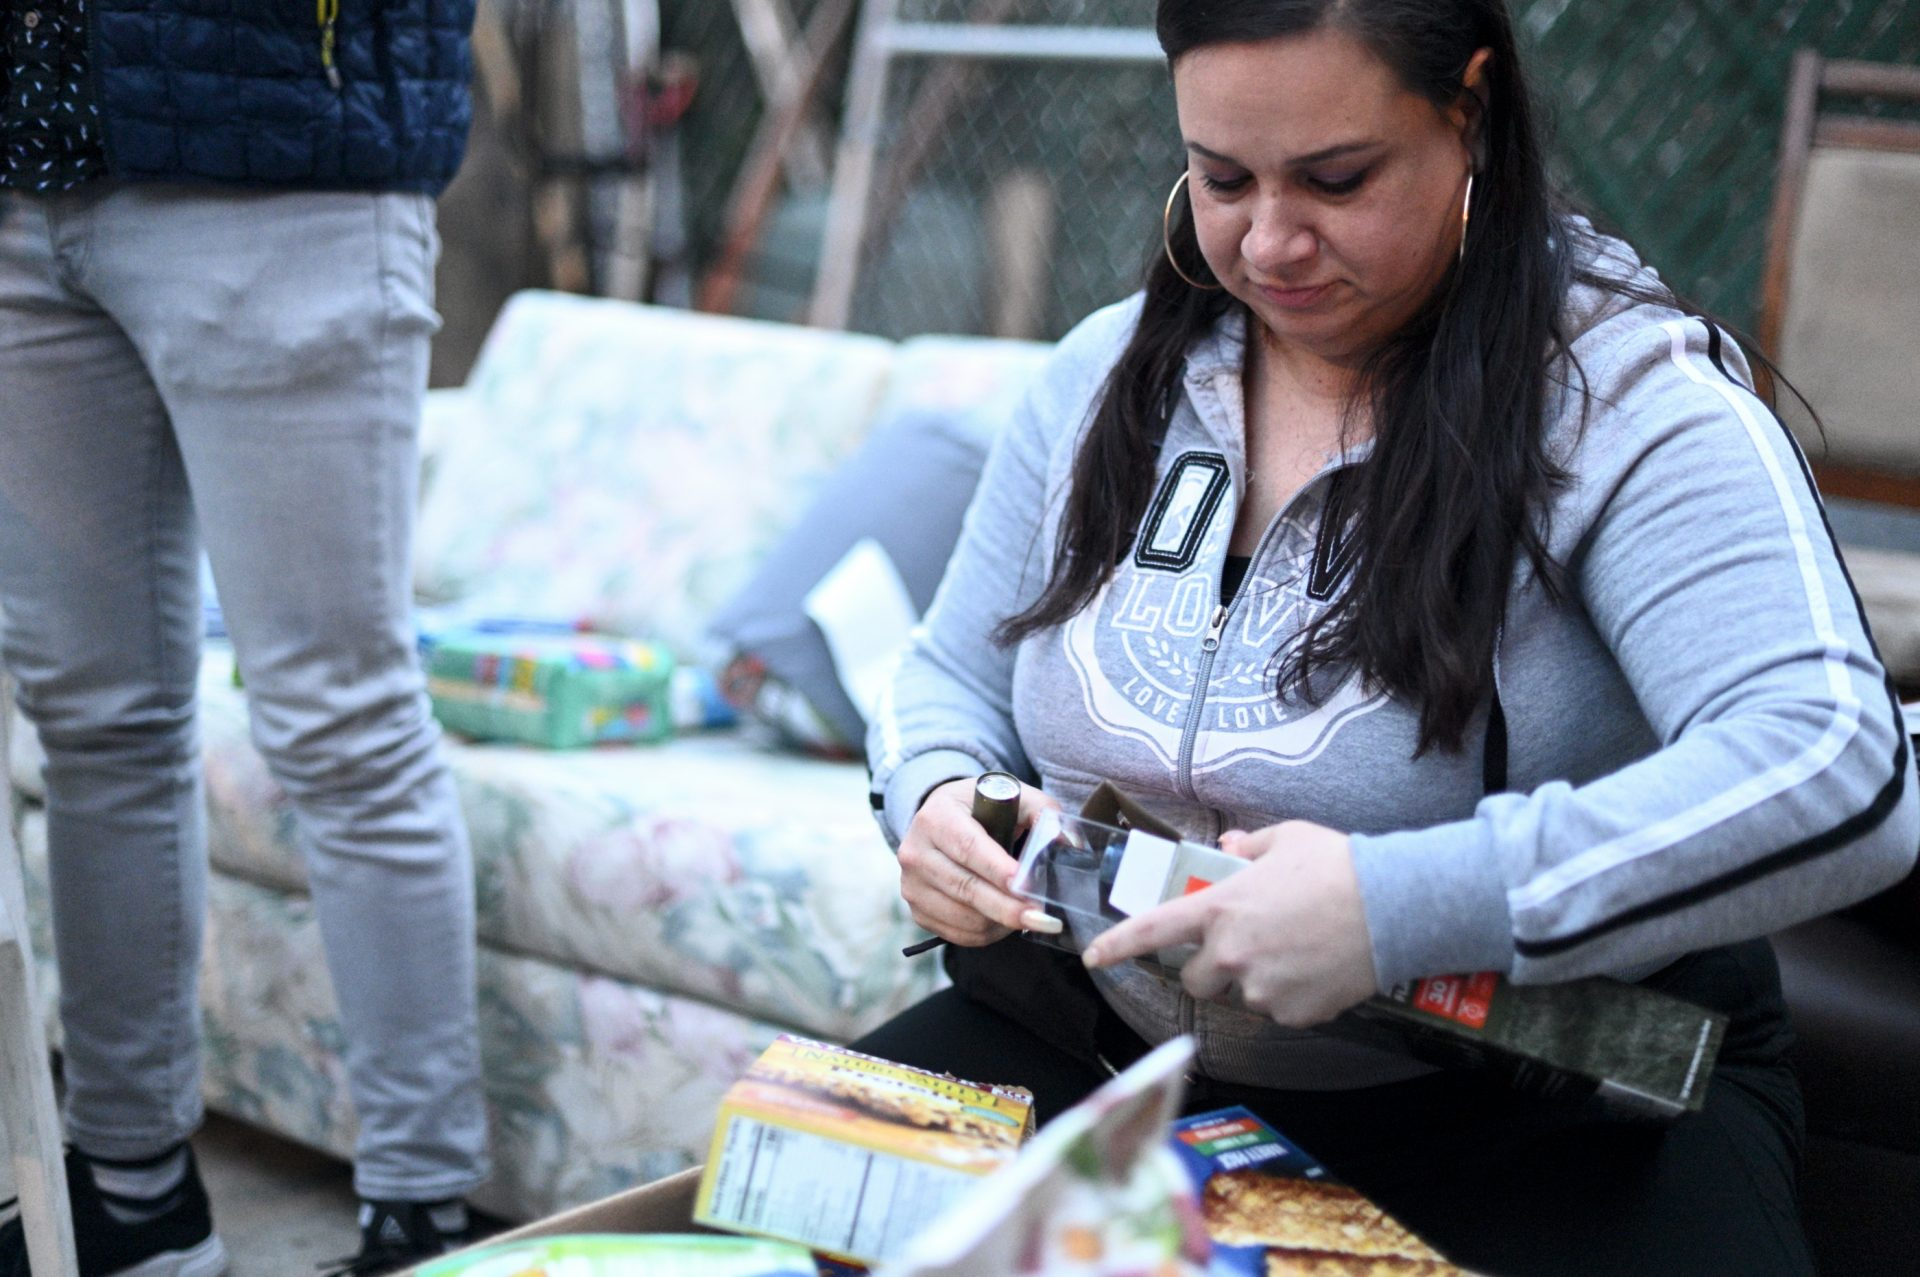 Activist and community organizer Venessa Maria Graber packs emergency items to be donated as a disaster relief package, during a meeting of Philly Boricuas, on Saturday, in North Philadelphia.